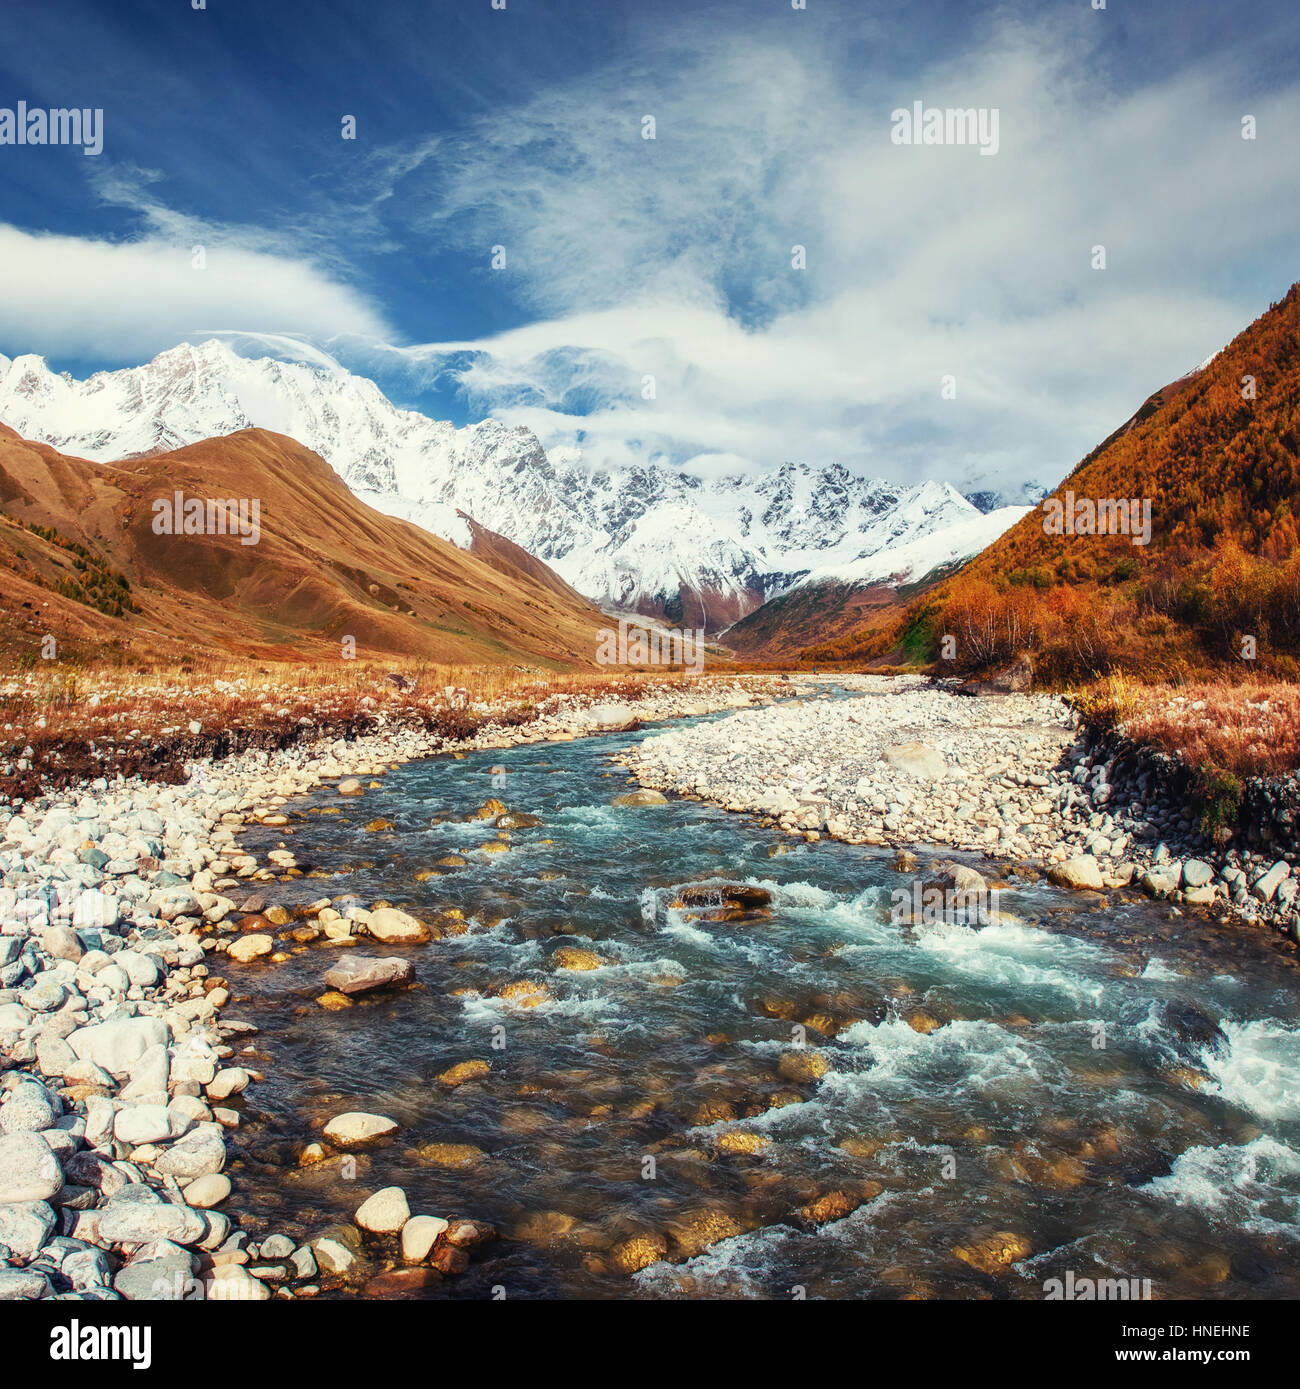 Snowy mountains and noisy mountain river - Stock Image